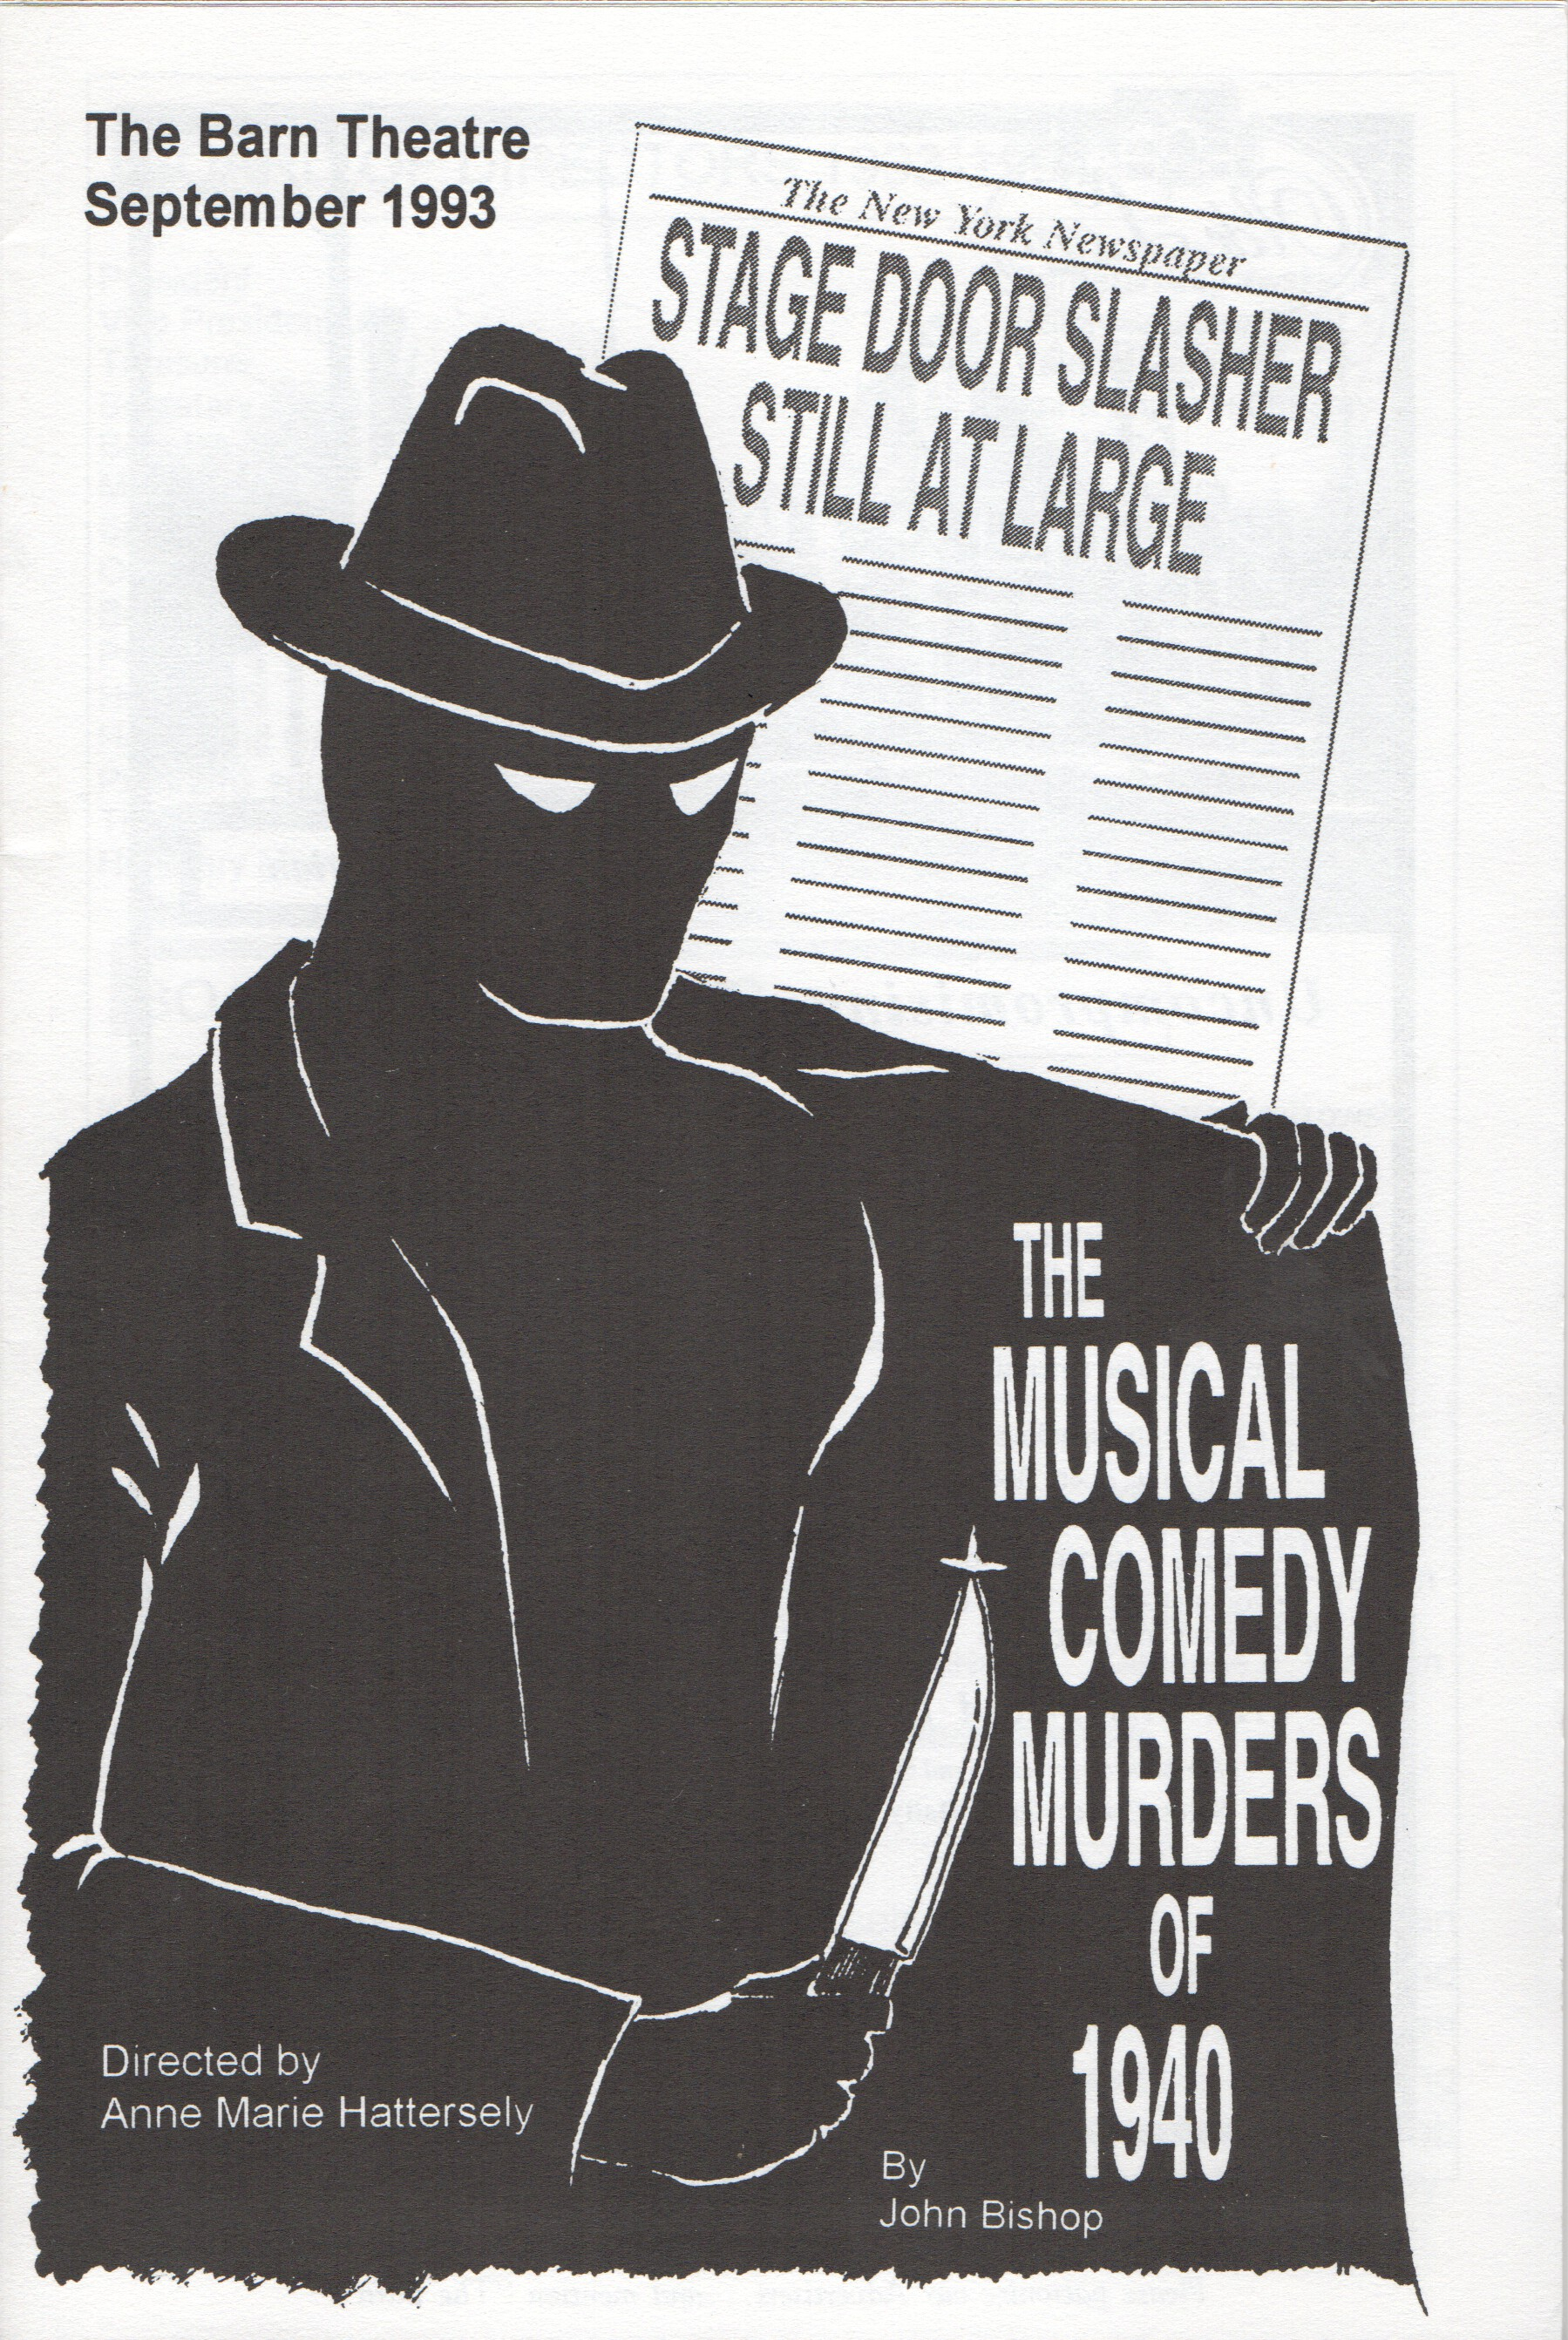 Program Cover for Musical Comedy Murders of 1940